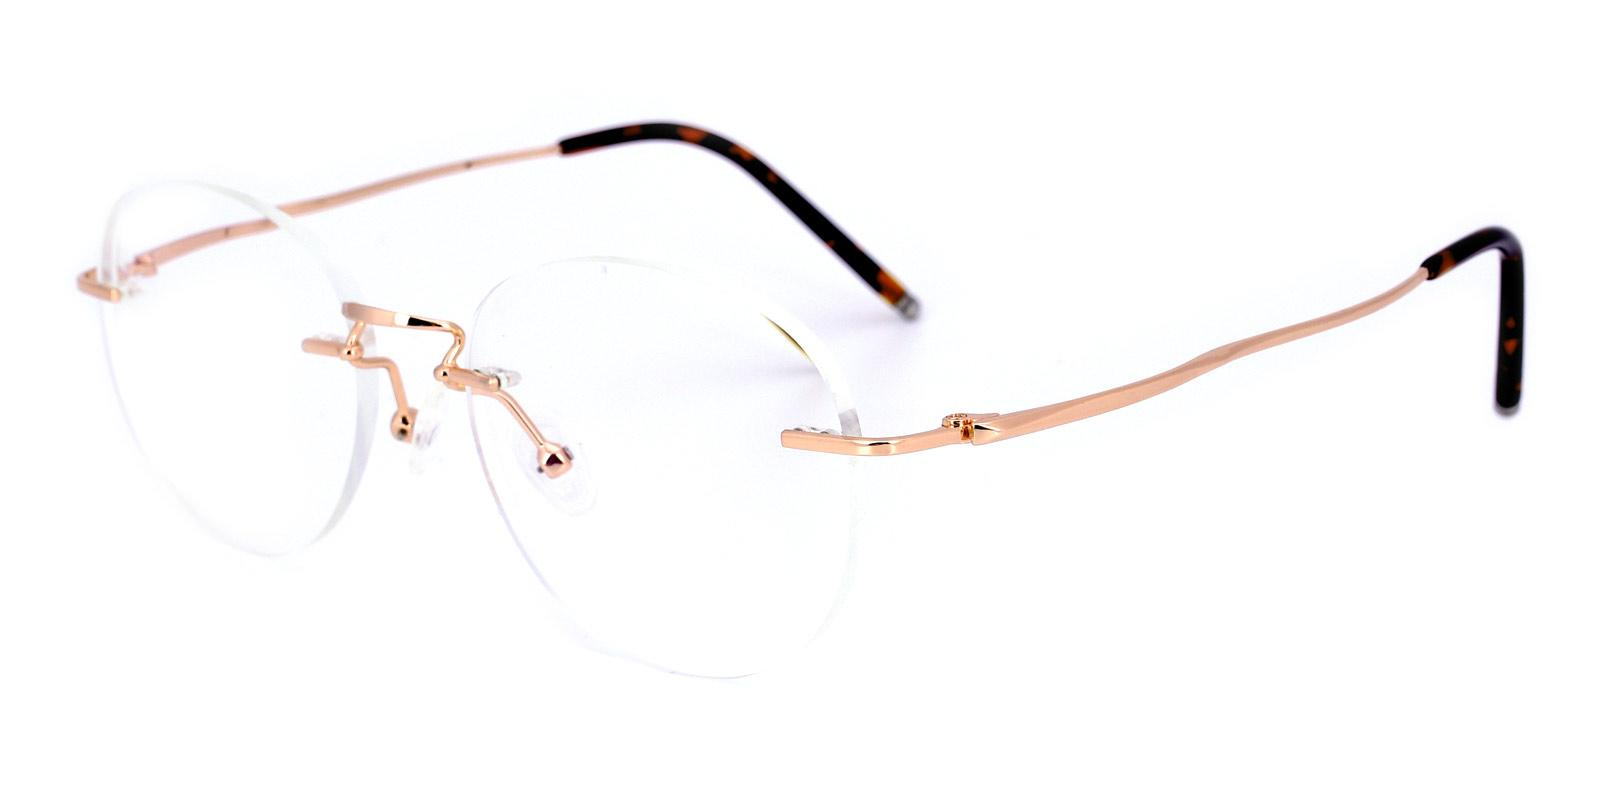 Pandimo-Gold-Varieties-Titanium-Eyeglasses-additional1